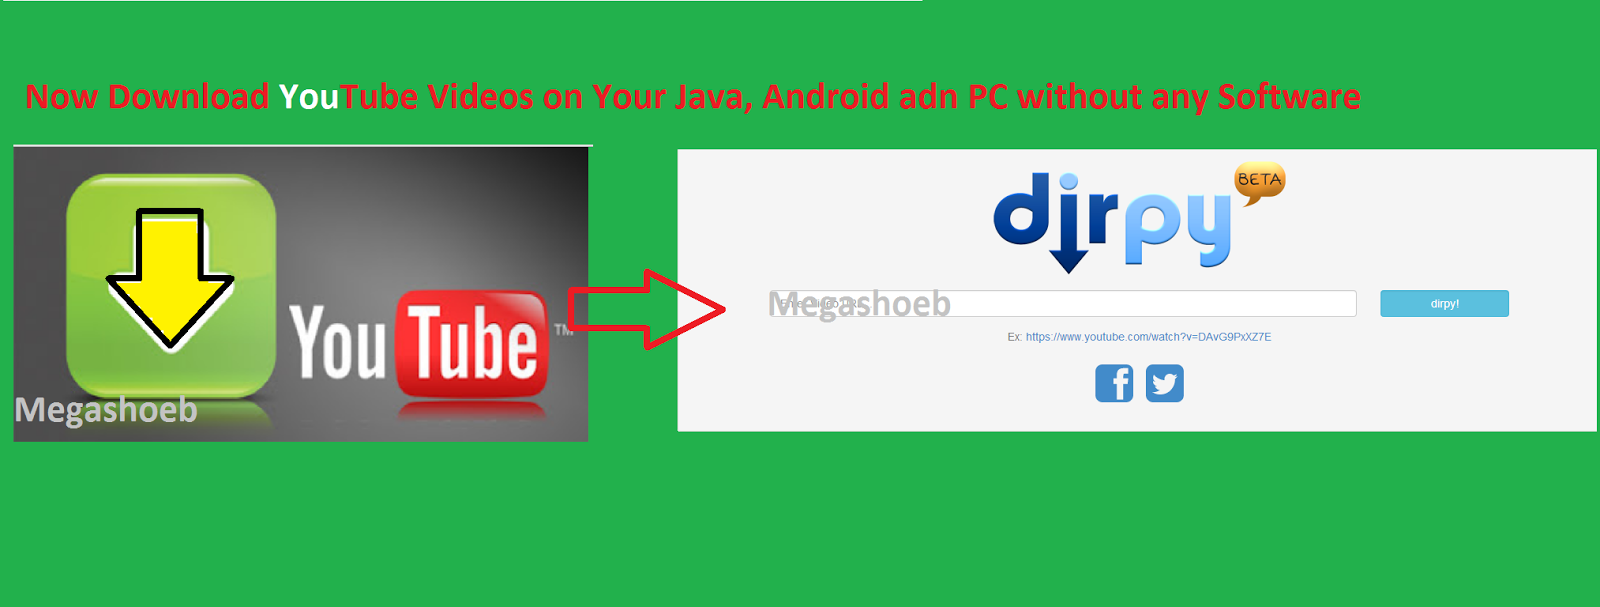 How to download youtube videos without any software on java android want to download youtube on your mobile specially for java users you want to download youtube videos but now its possible to download youtube videos on ccuart Gallery